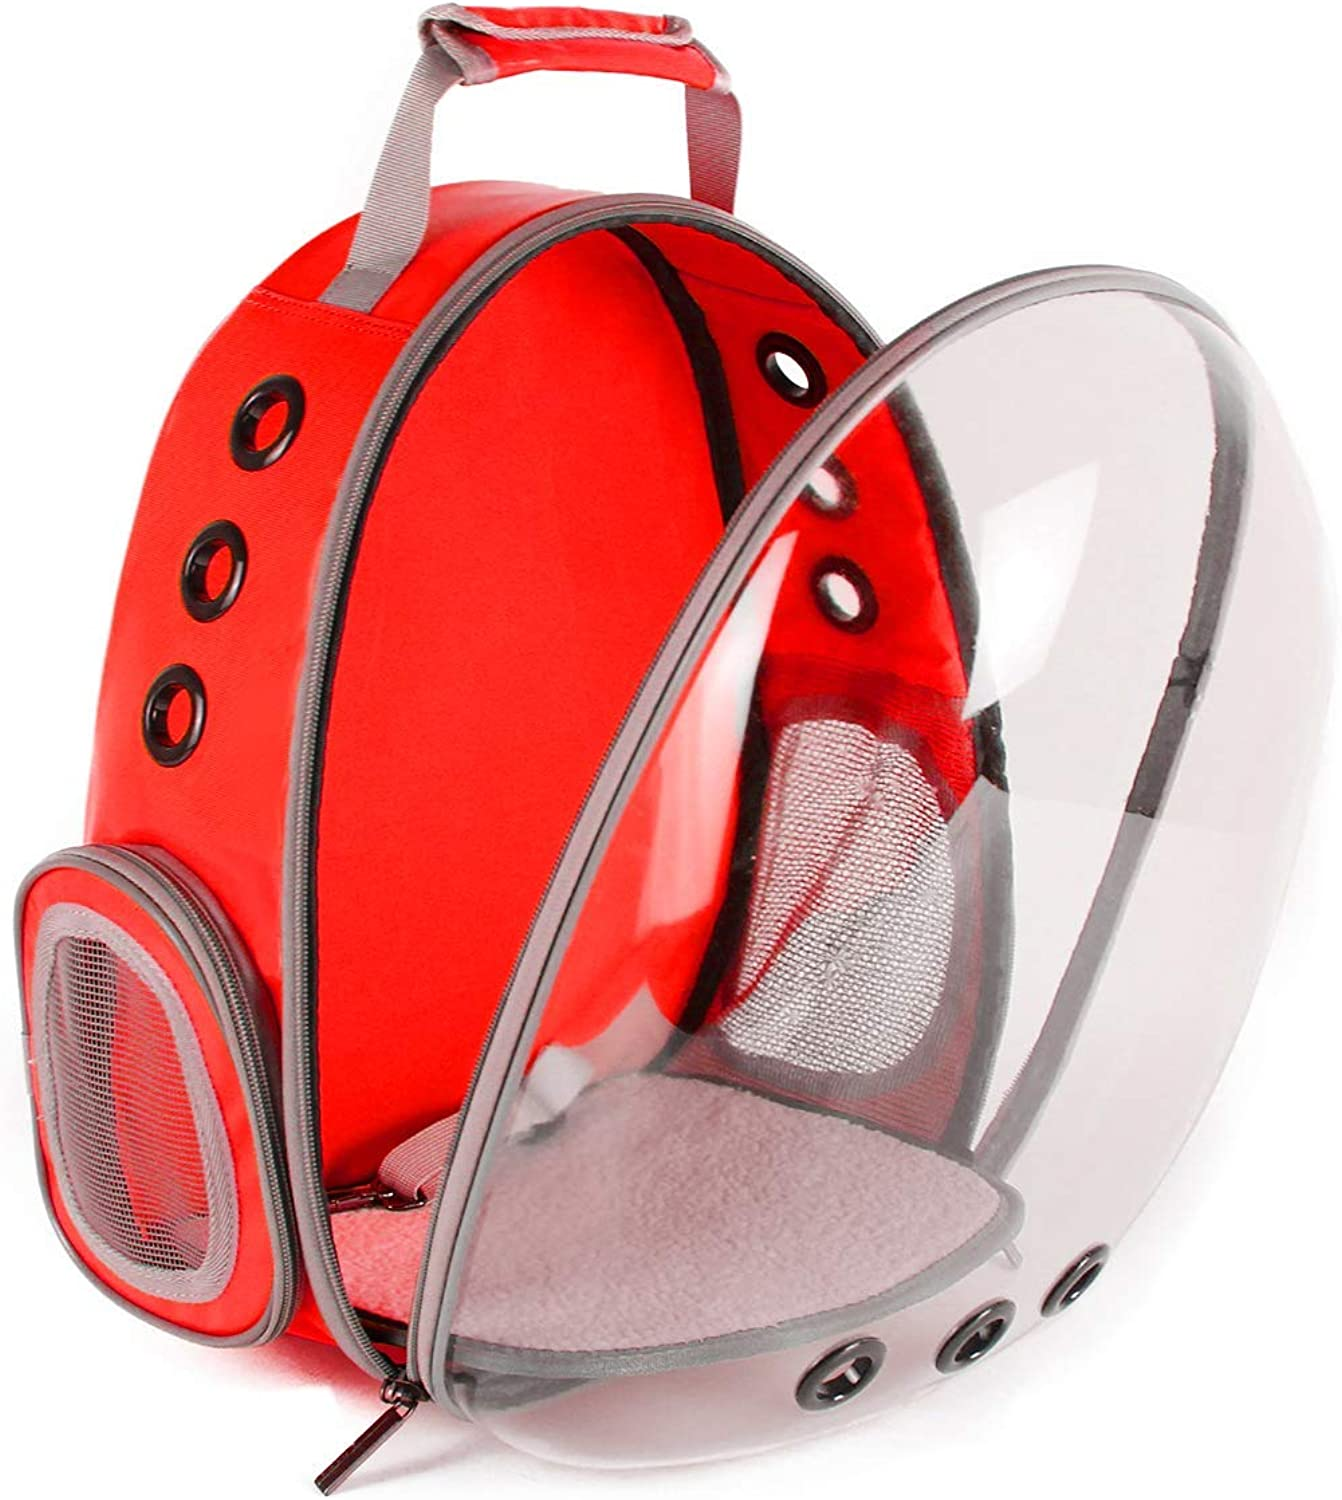 Backpack Cat Outdoor Carrying, Space Capsule Pet Carrier for Small Dog, Transparent Waterproof Cat Holding, Red